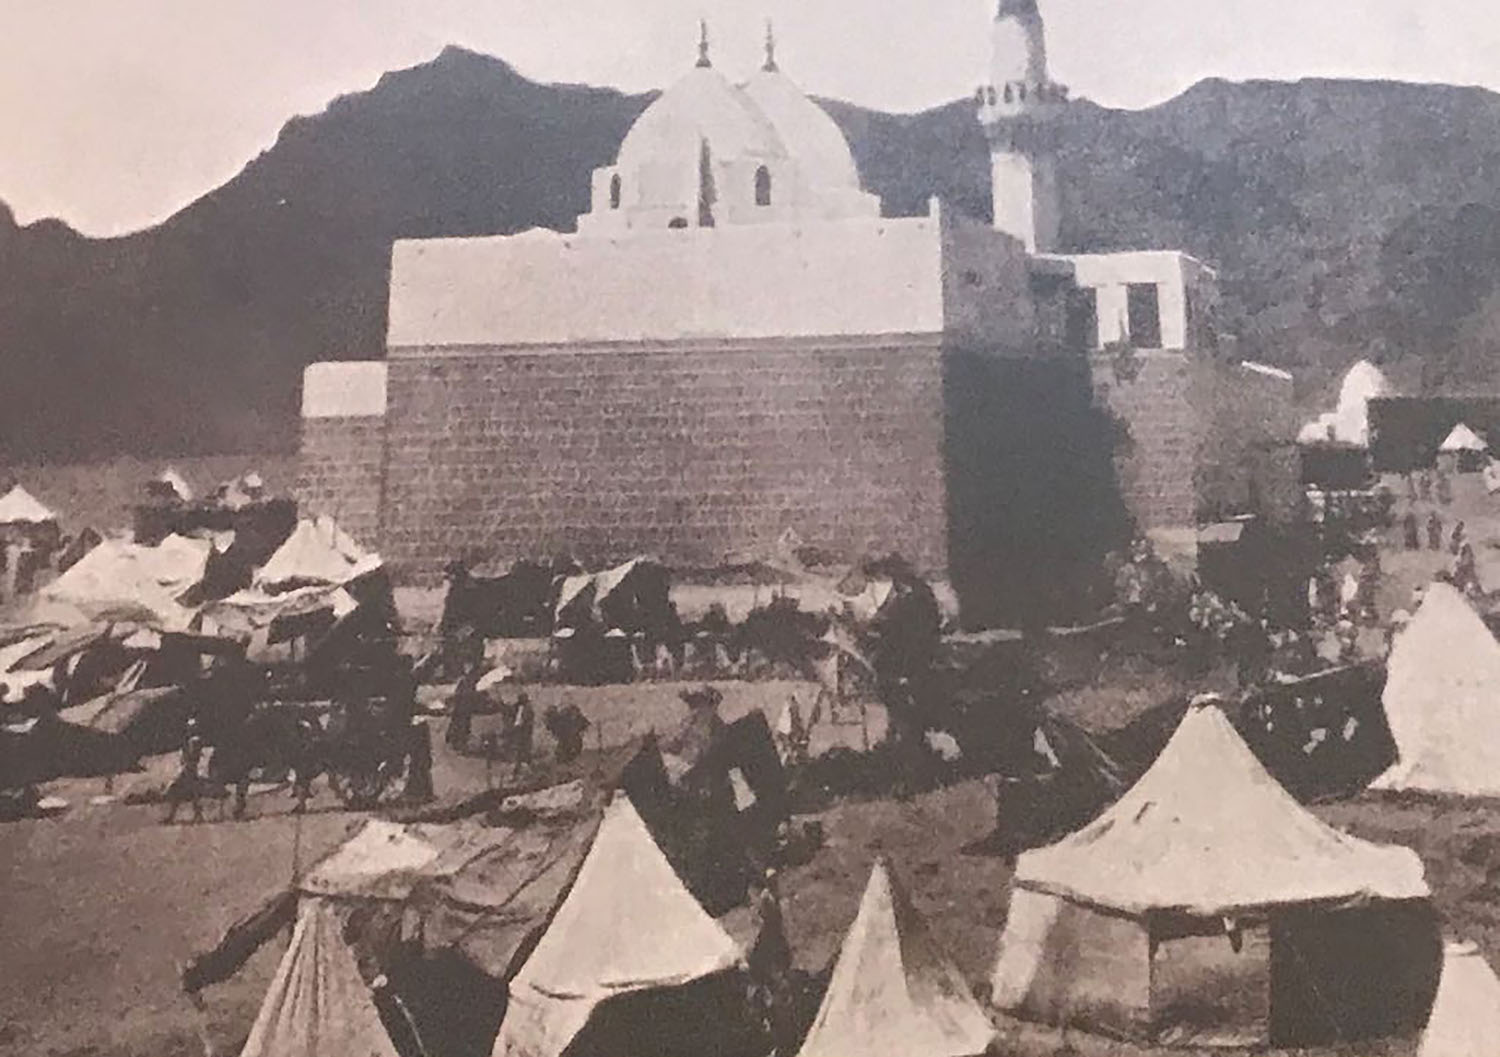 Sayyid Al-Shuhada Mosque is at the site of the battle of Uhud